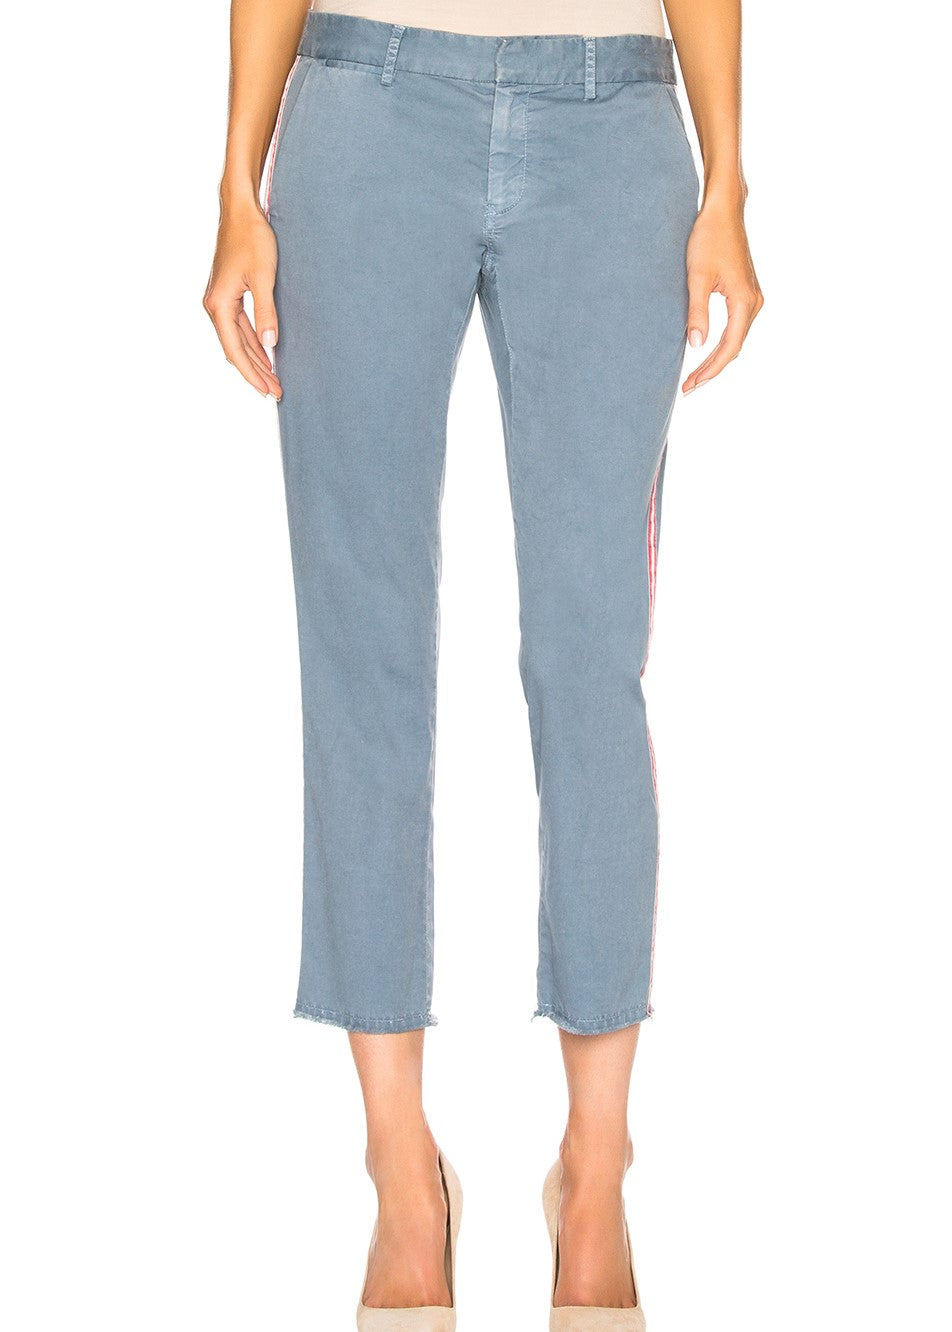 Nili Lotan east hampton pant with tape in washed blue